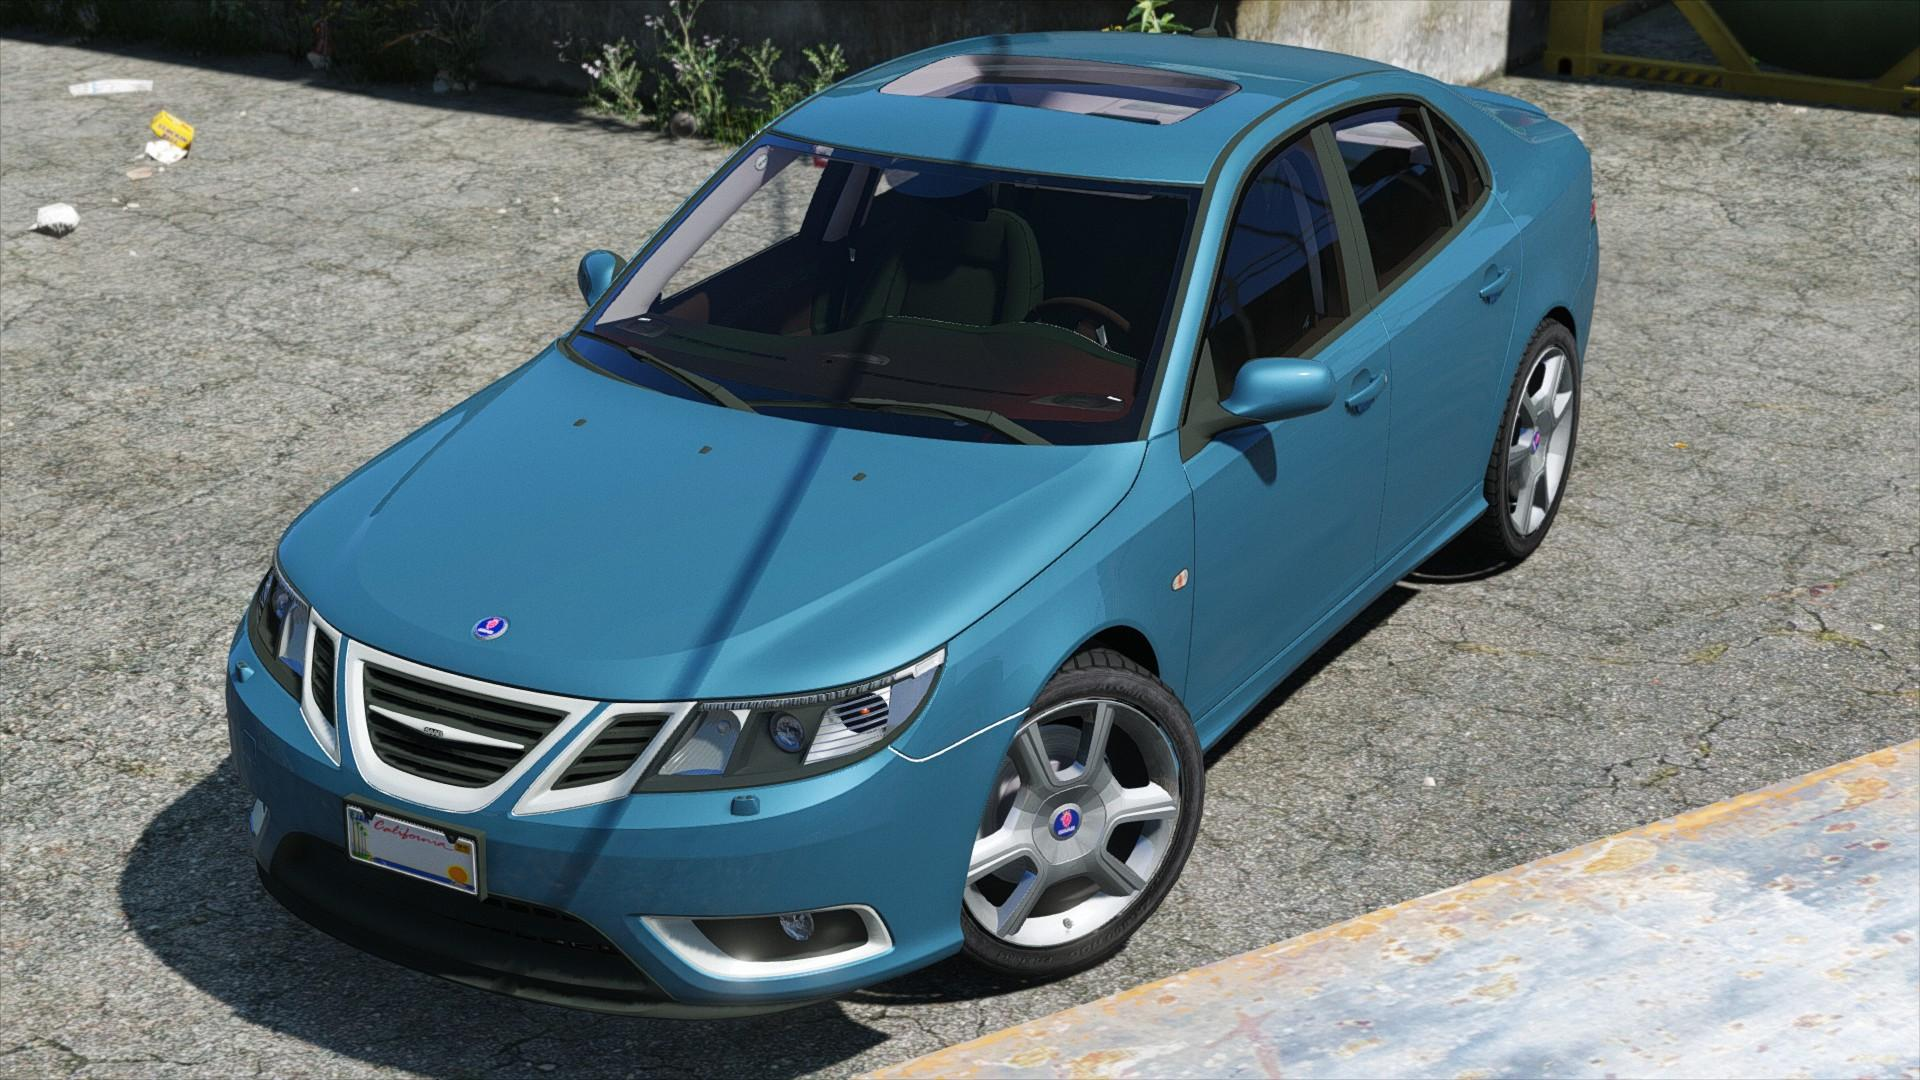 saab 9 3 turbo x gta5. Black Bedroom Furniture Sets. Home Design Ideas